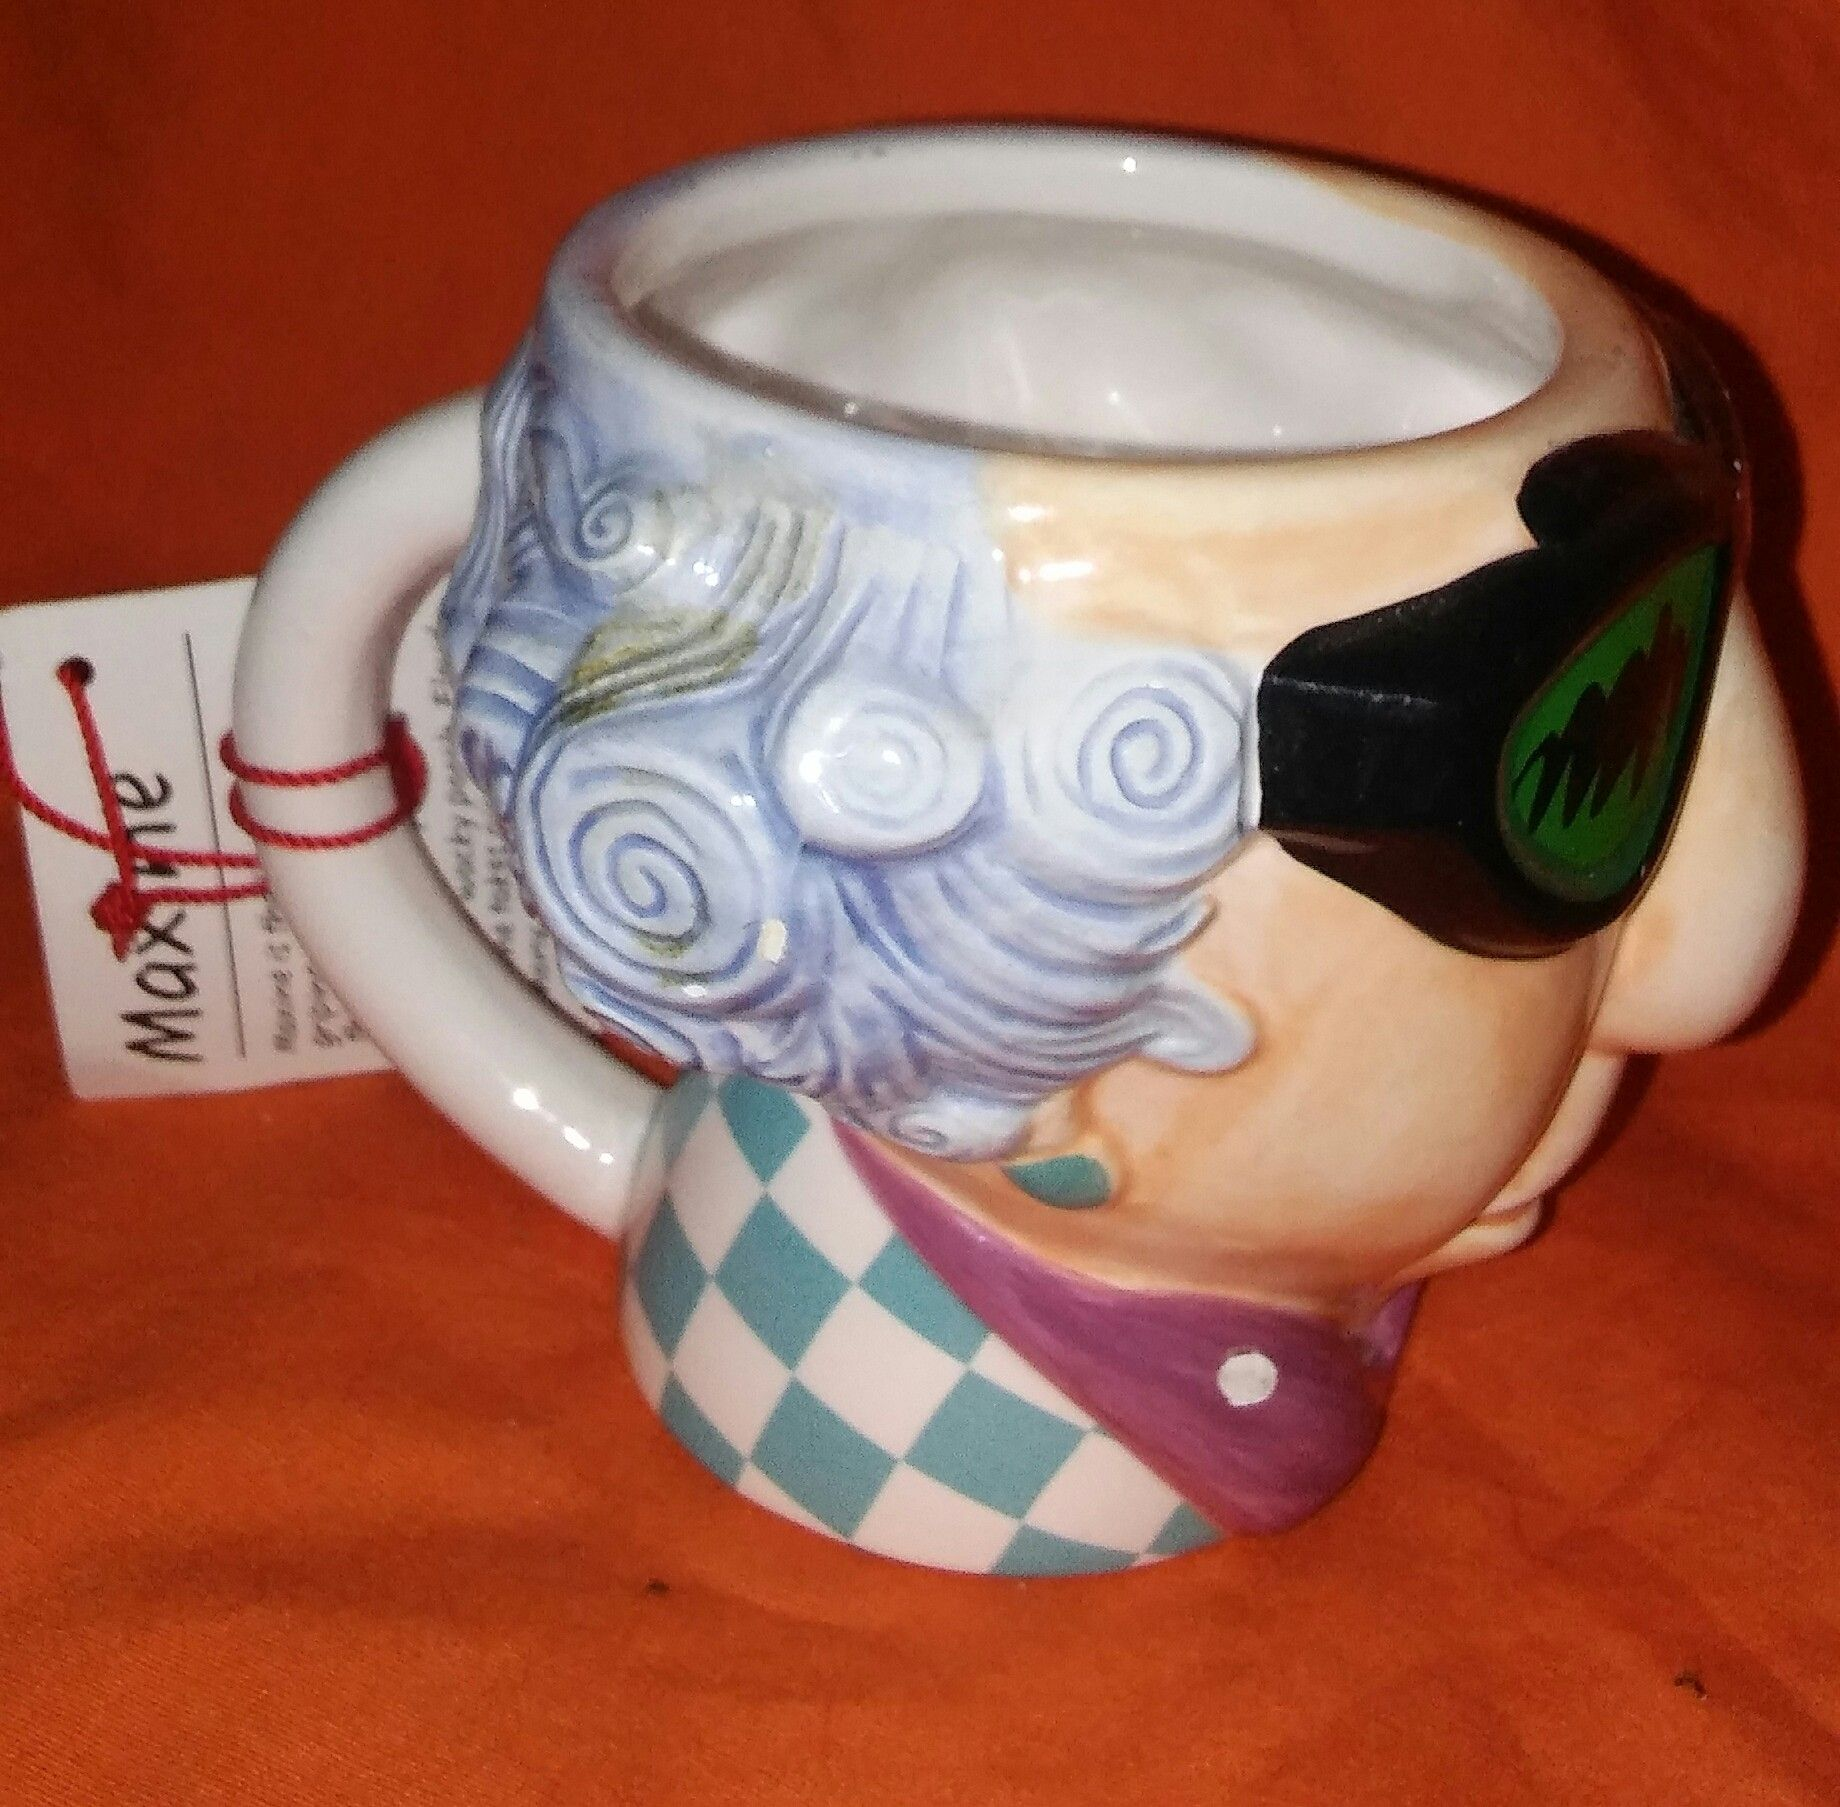 A never used ceramic coffee mug of maxine from shoebox greetings by a never used ceramic coffee mug of maxine from shoebox greetings by hallmark wearing sunglasses and m4hsunfo Image collections